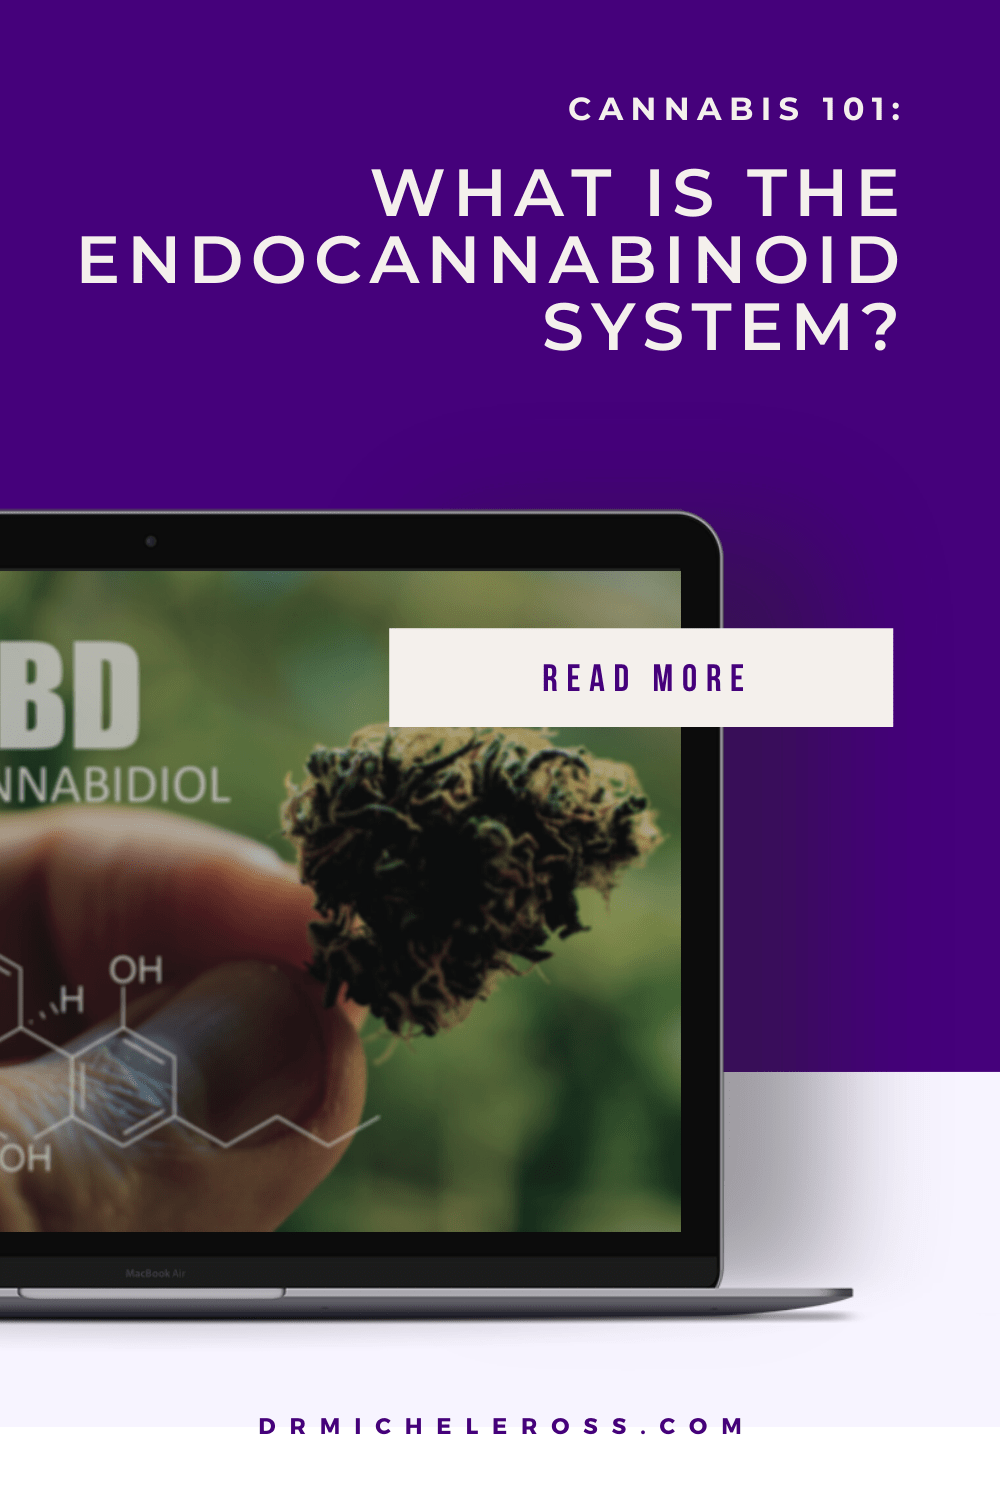 Cannabis 101: What is the Endocannabinoid System?